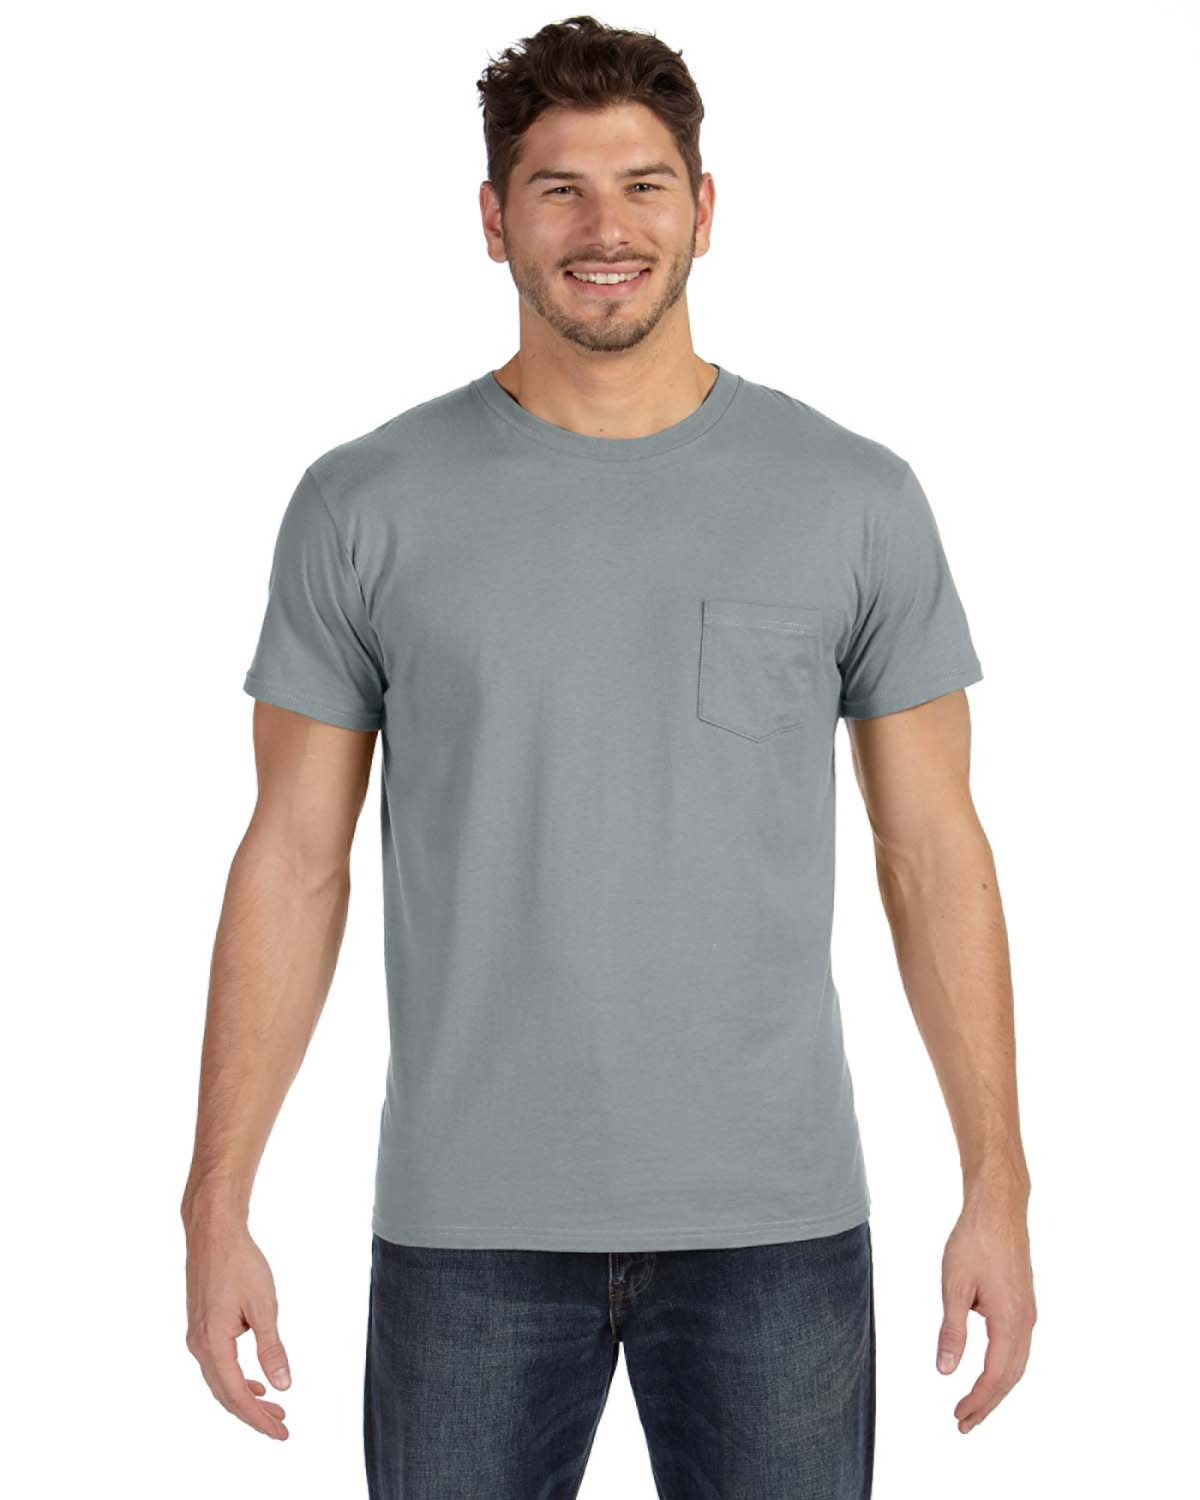 Hanes 498P - 4.5 oz., 100% Ringspun Cotton nano-T® T-Shirt with Pocket